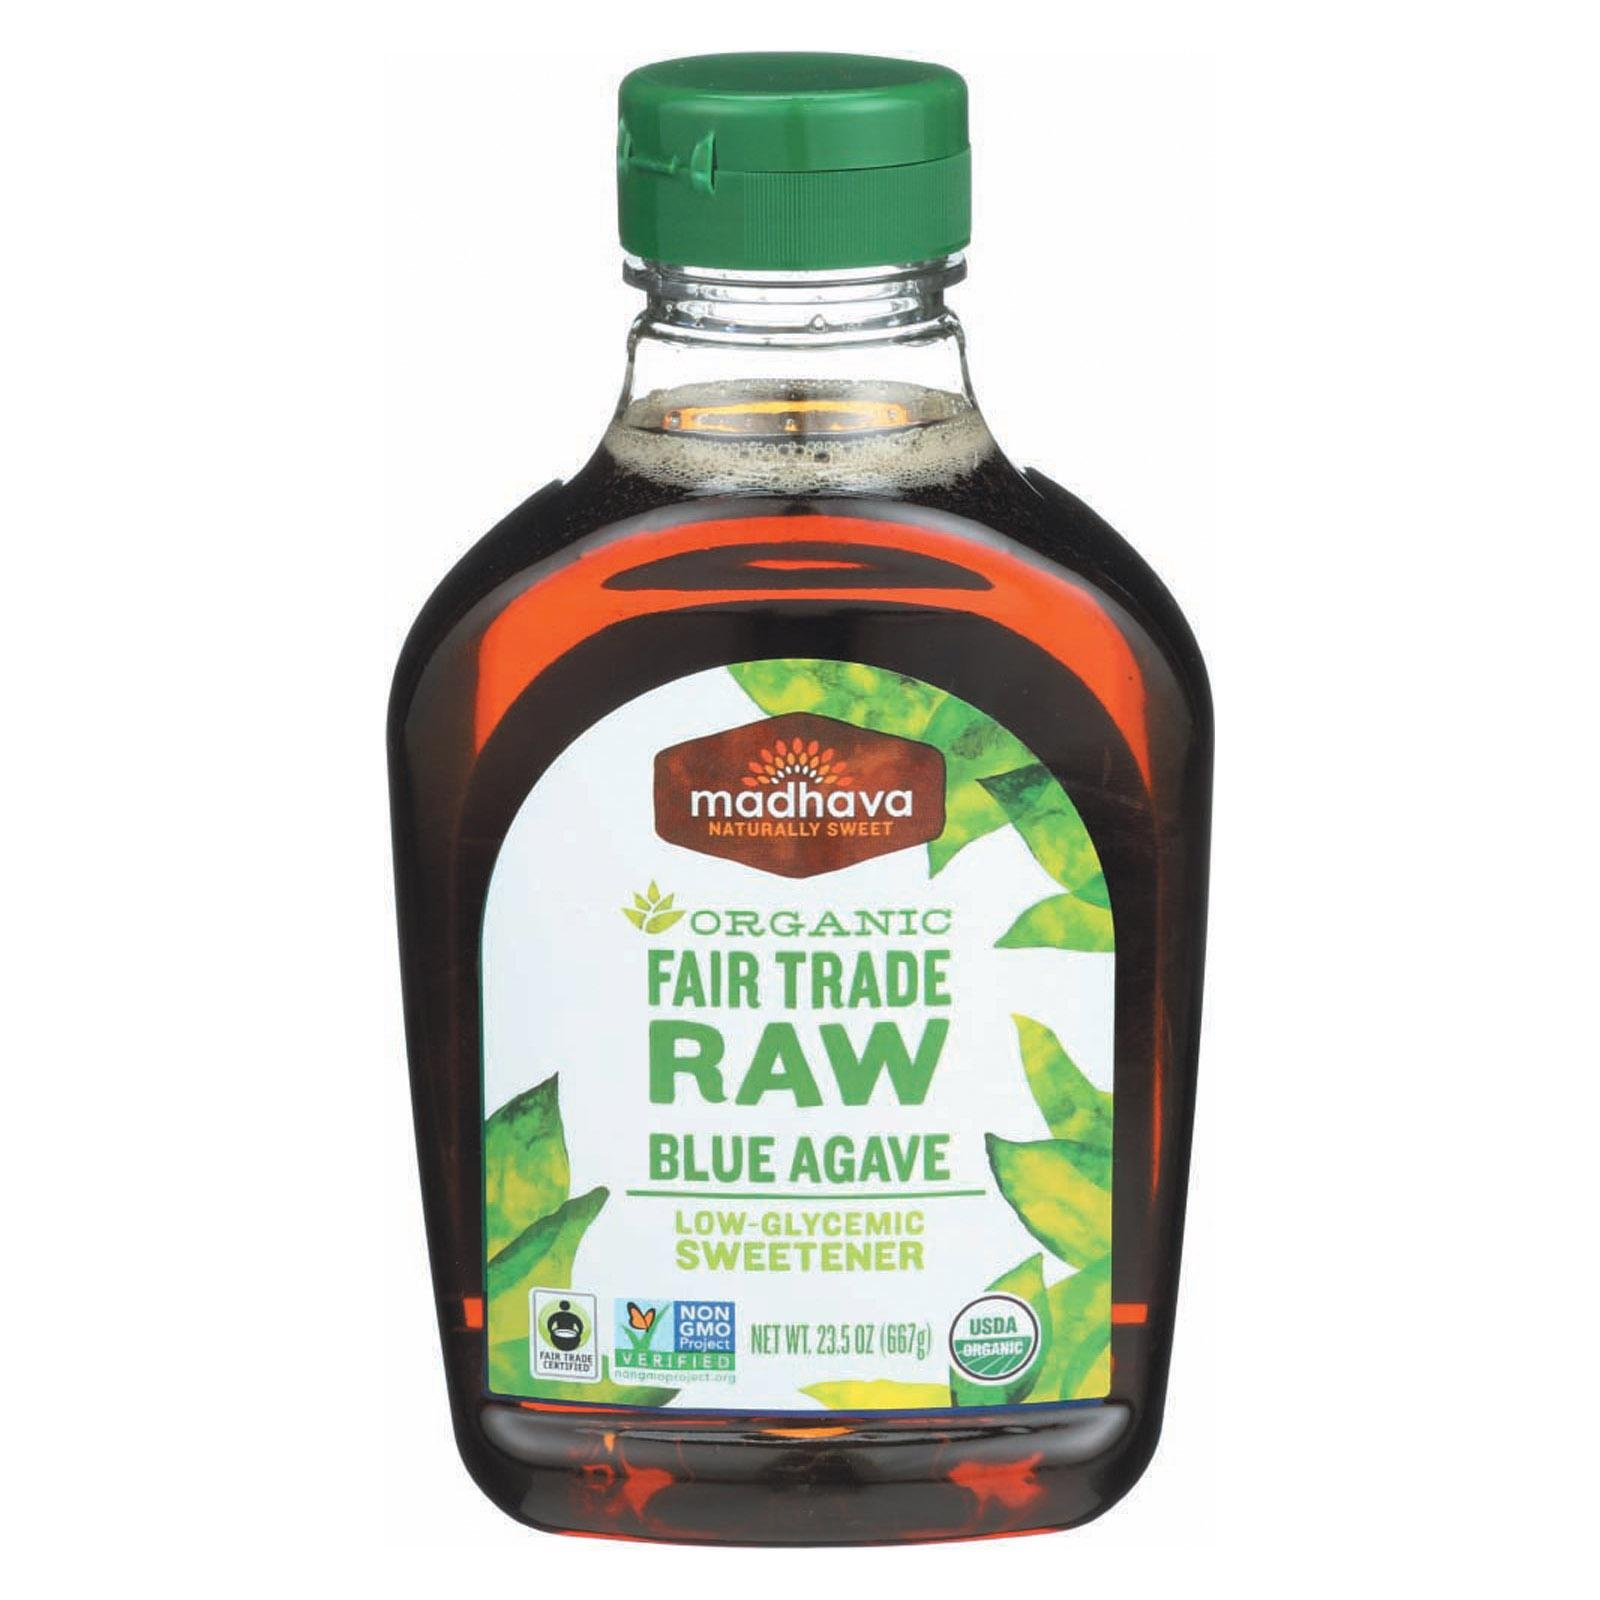 Madhava Pure Agave Nectar Raw 23.5 Oz -Pack of 6